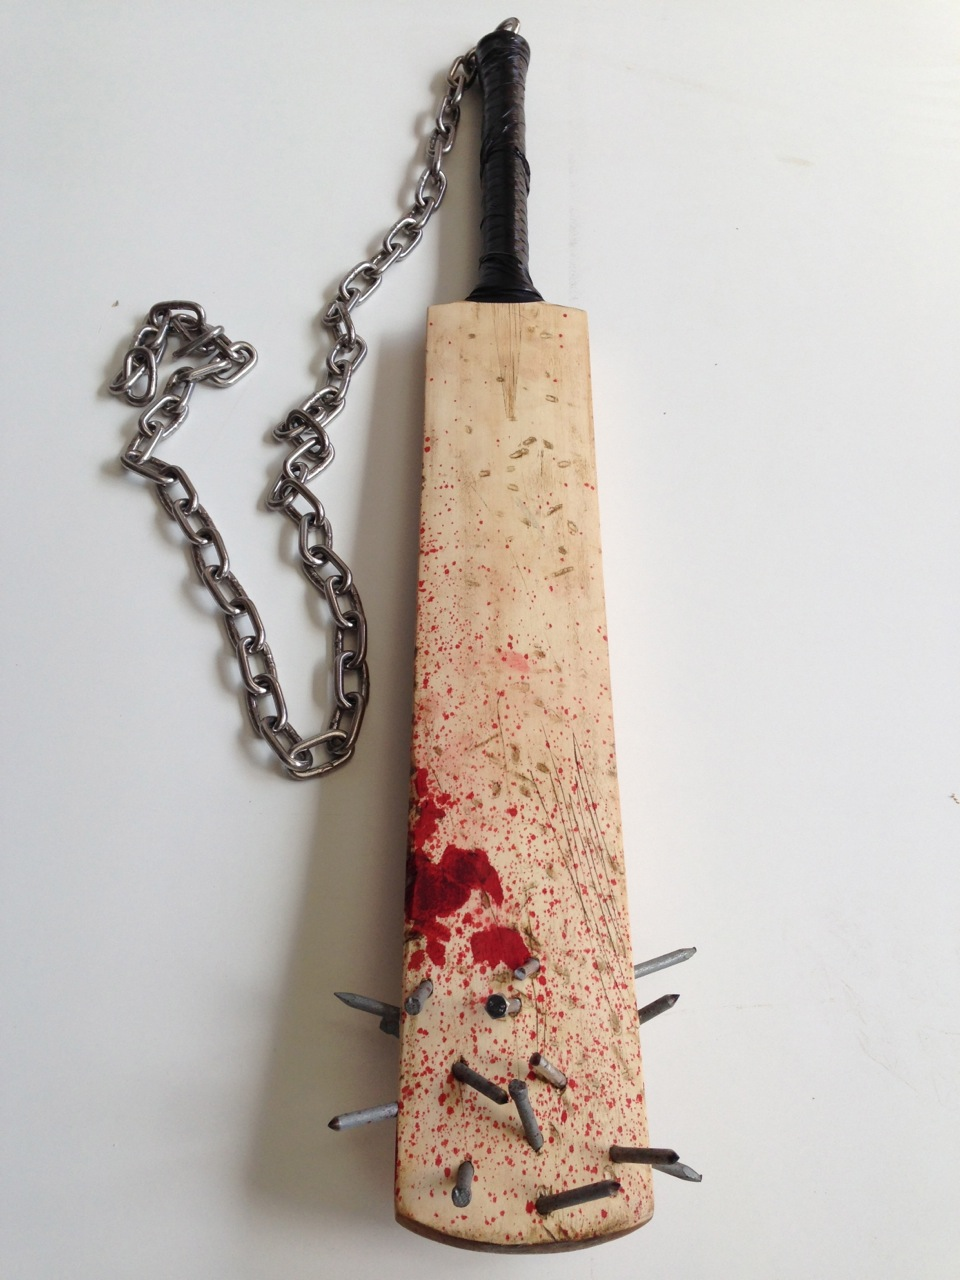 cricket bat weapon